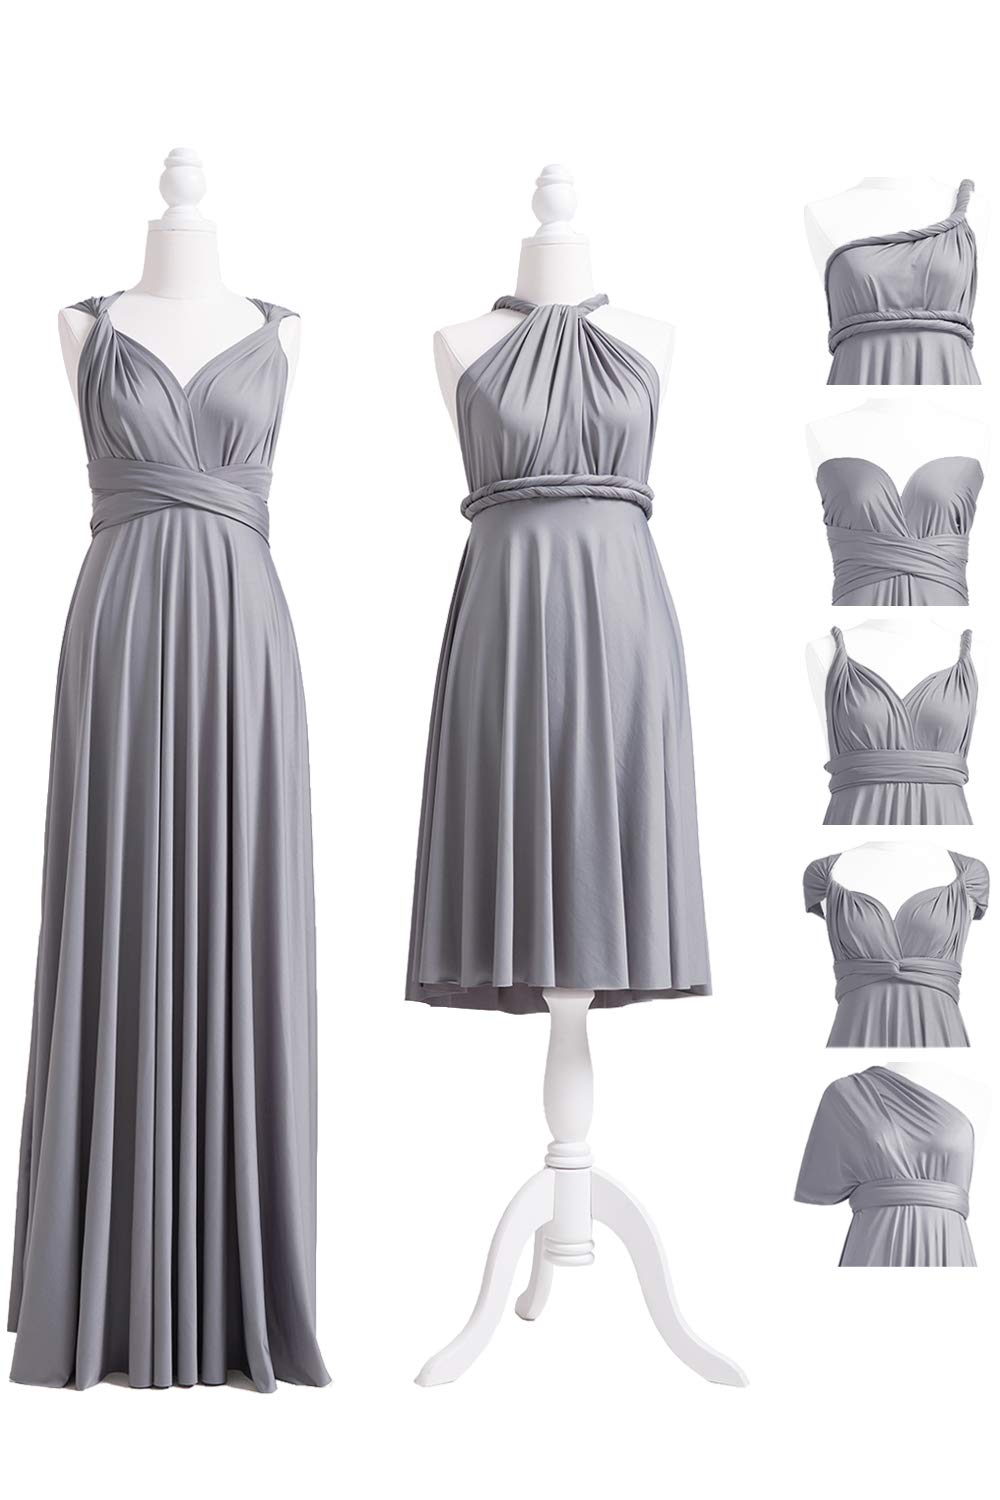 72STYLES Grey Infinity Dress with Bandeau, Convertible Dress ...